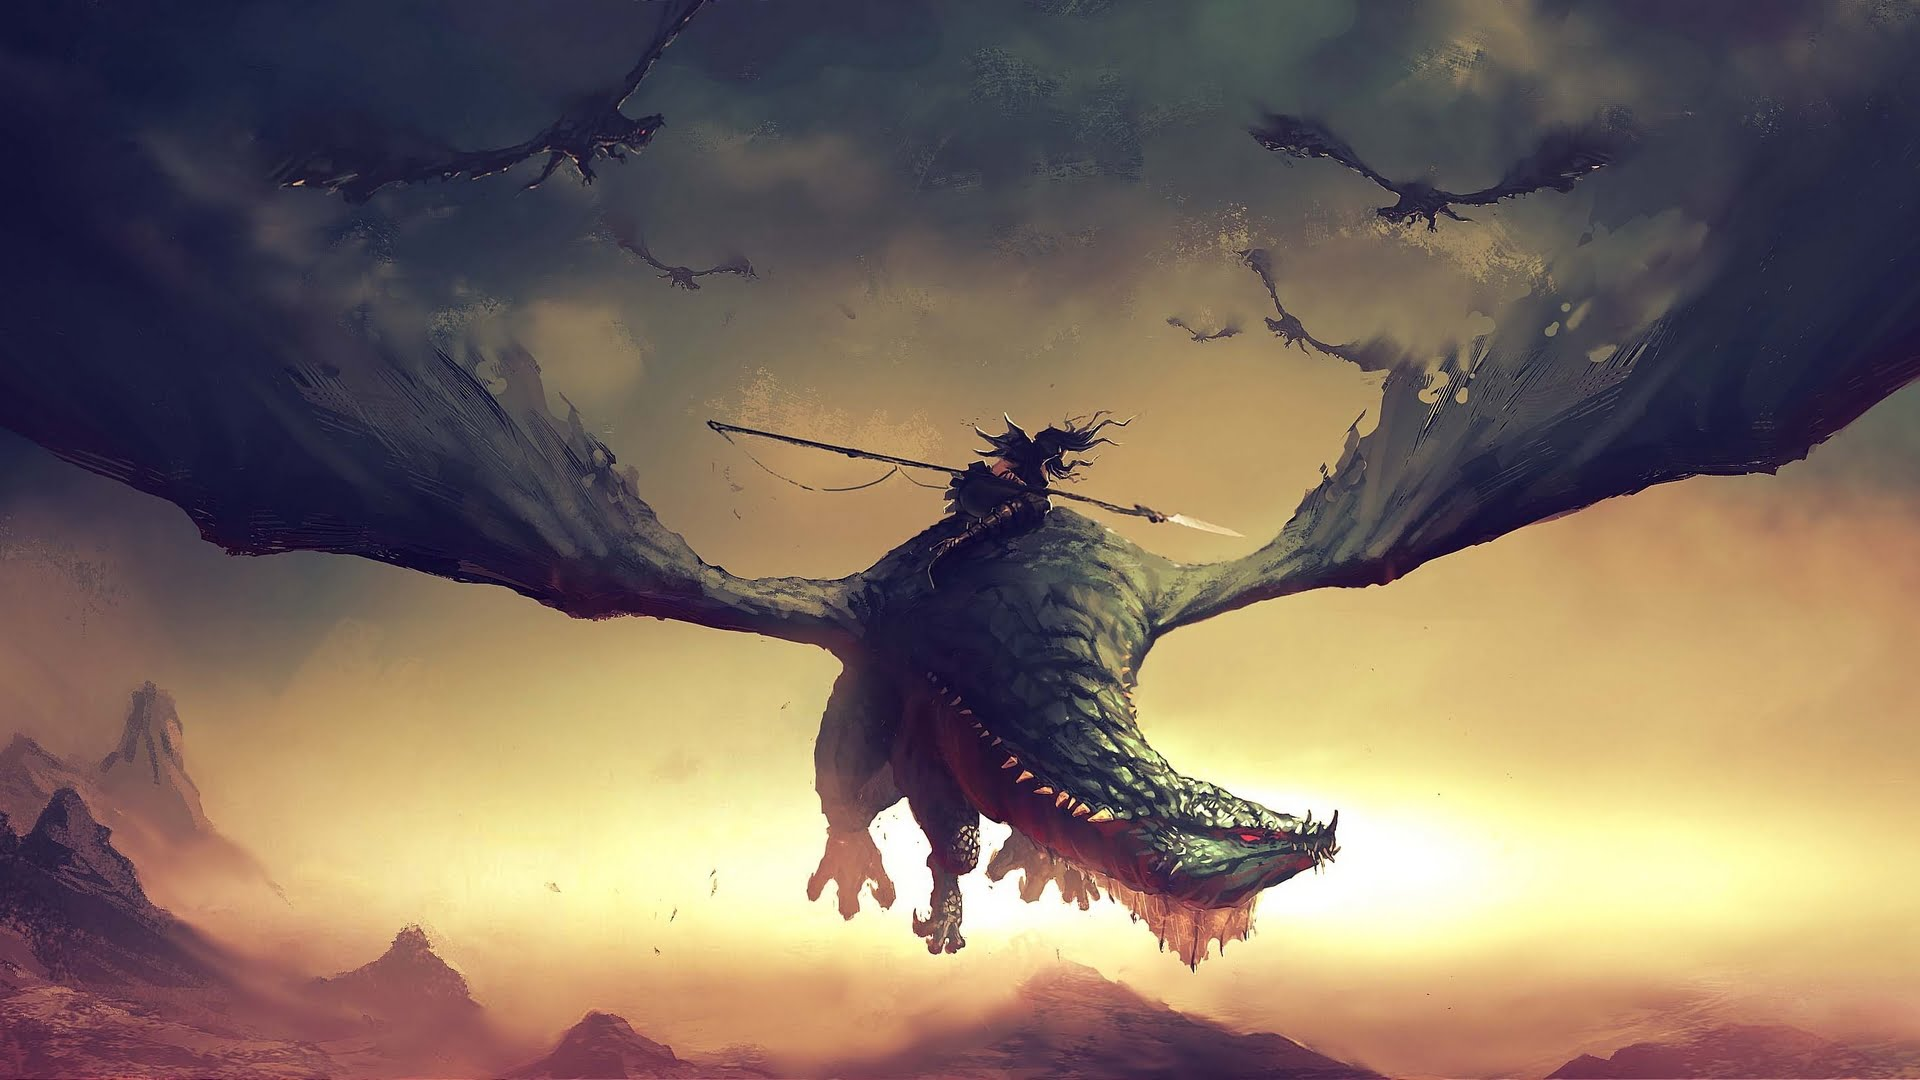 dragon backgrounds